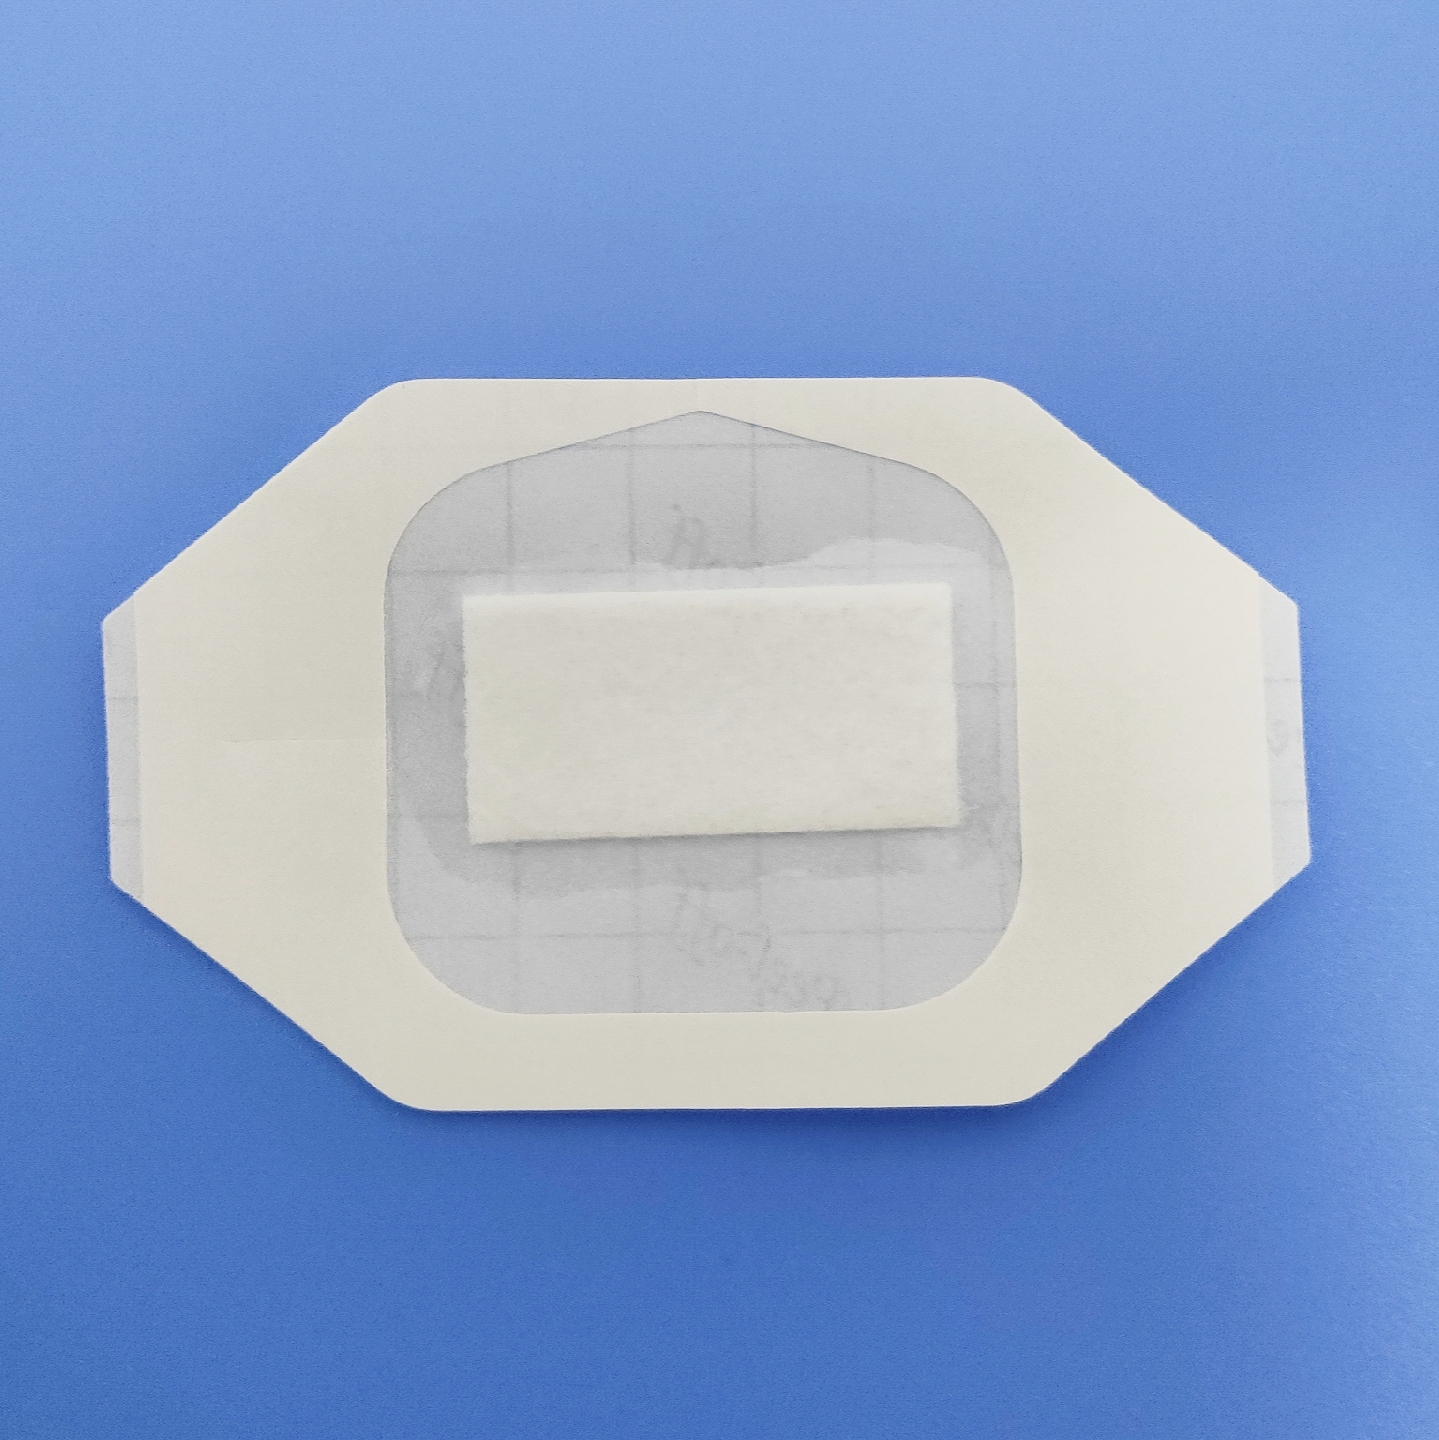 Primapore island dressing China Manufacturer Medical Product Dressings medical consumables